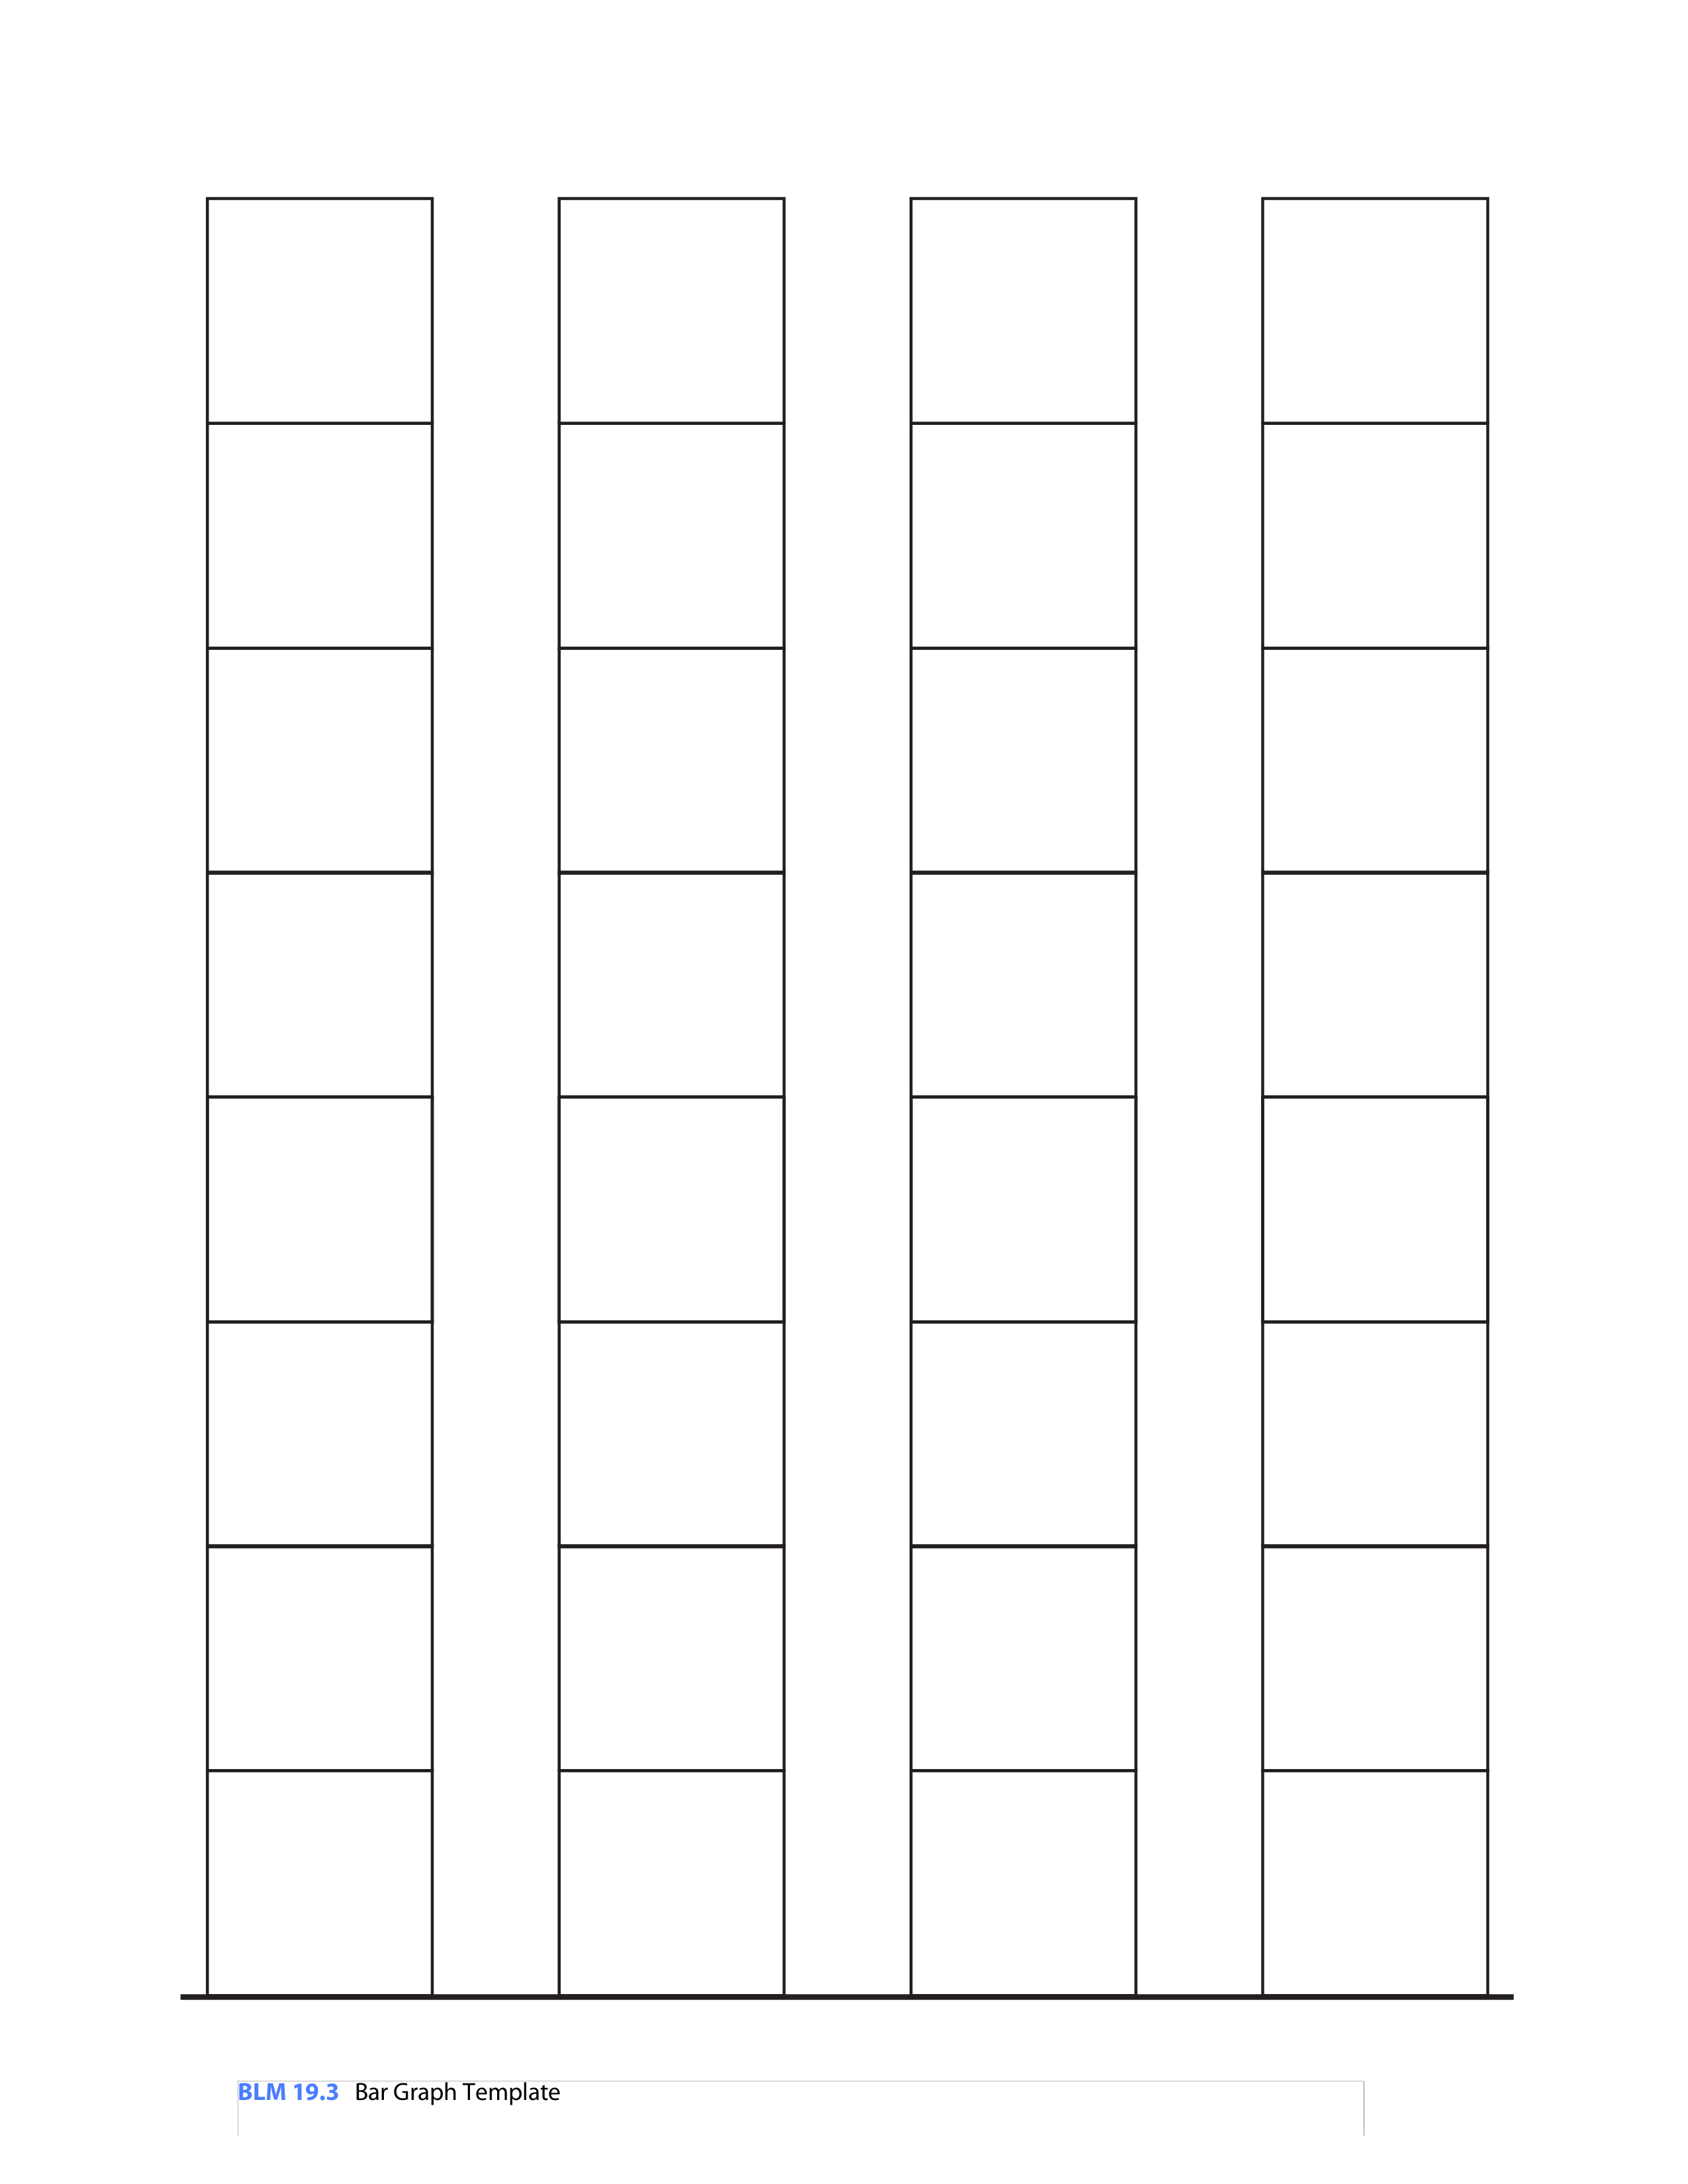 free bar graph for students templates at